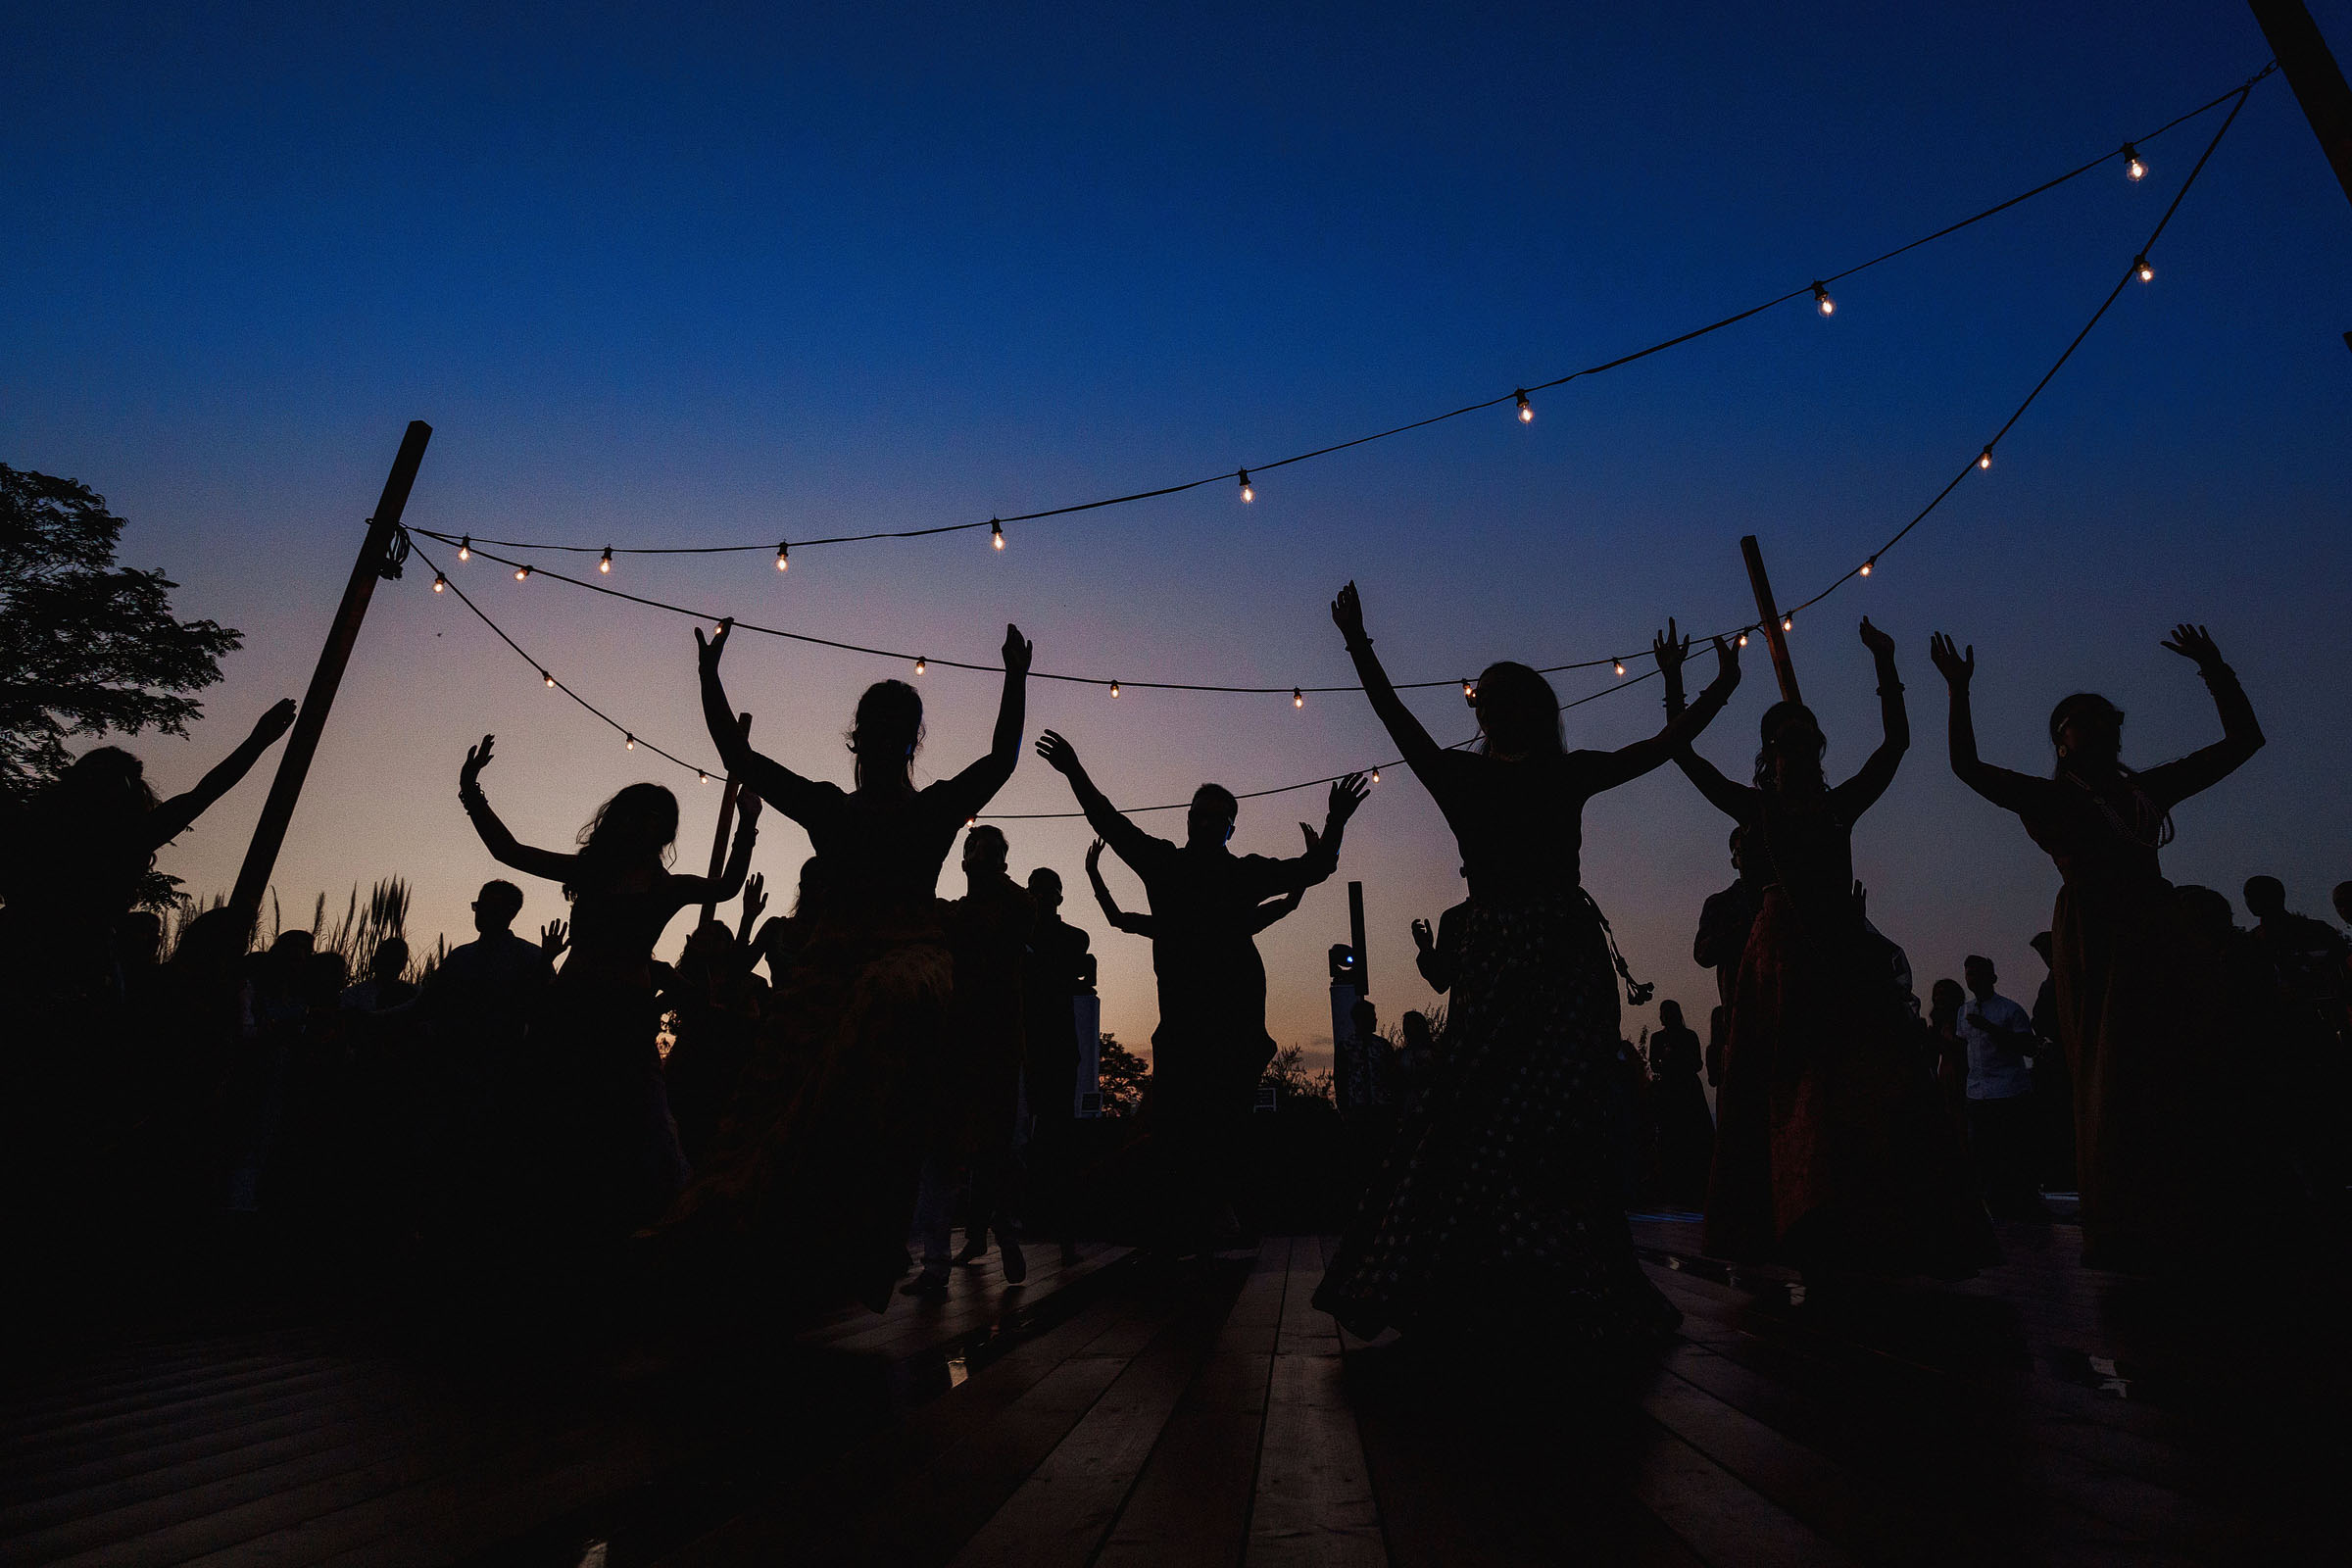 guests-dancing-under-strings-of-lights-f5-photography